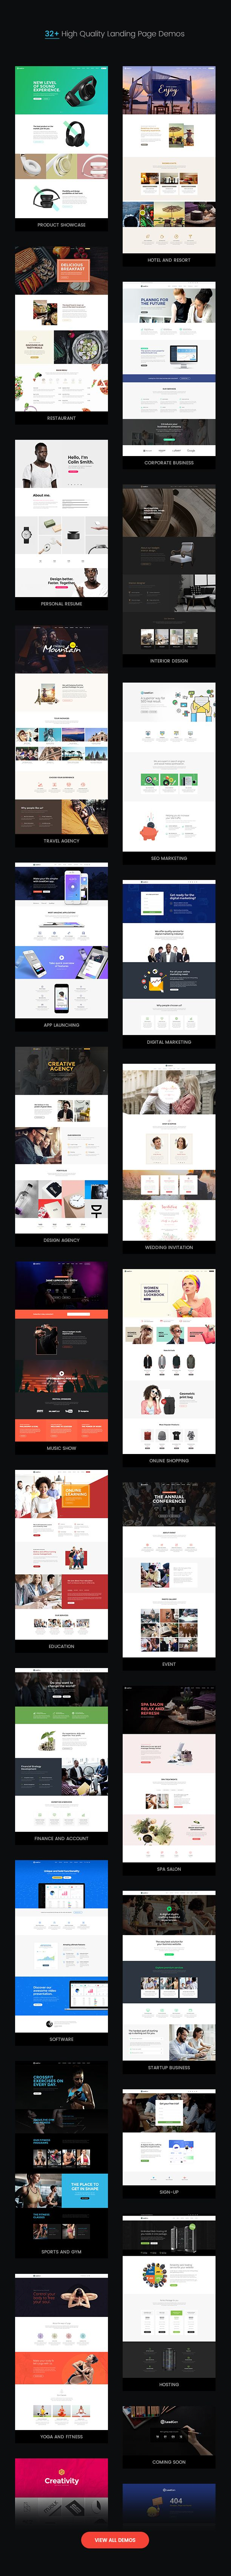 LeadGen is a conversion ratio and speed optimized multi-purpose marketing landing page template with drag & drop page builder and tons of readymade elements and demos with greater level of customiz...